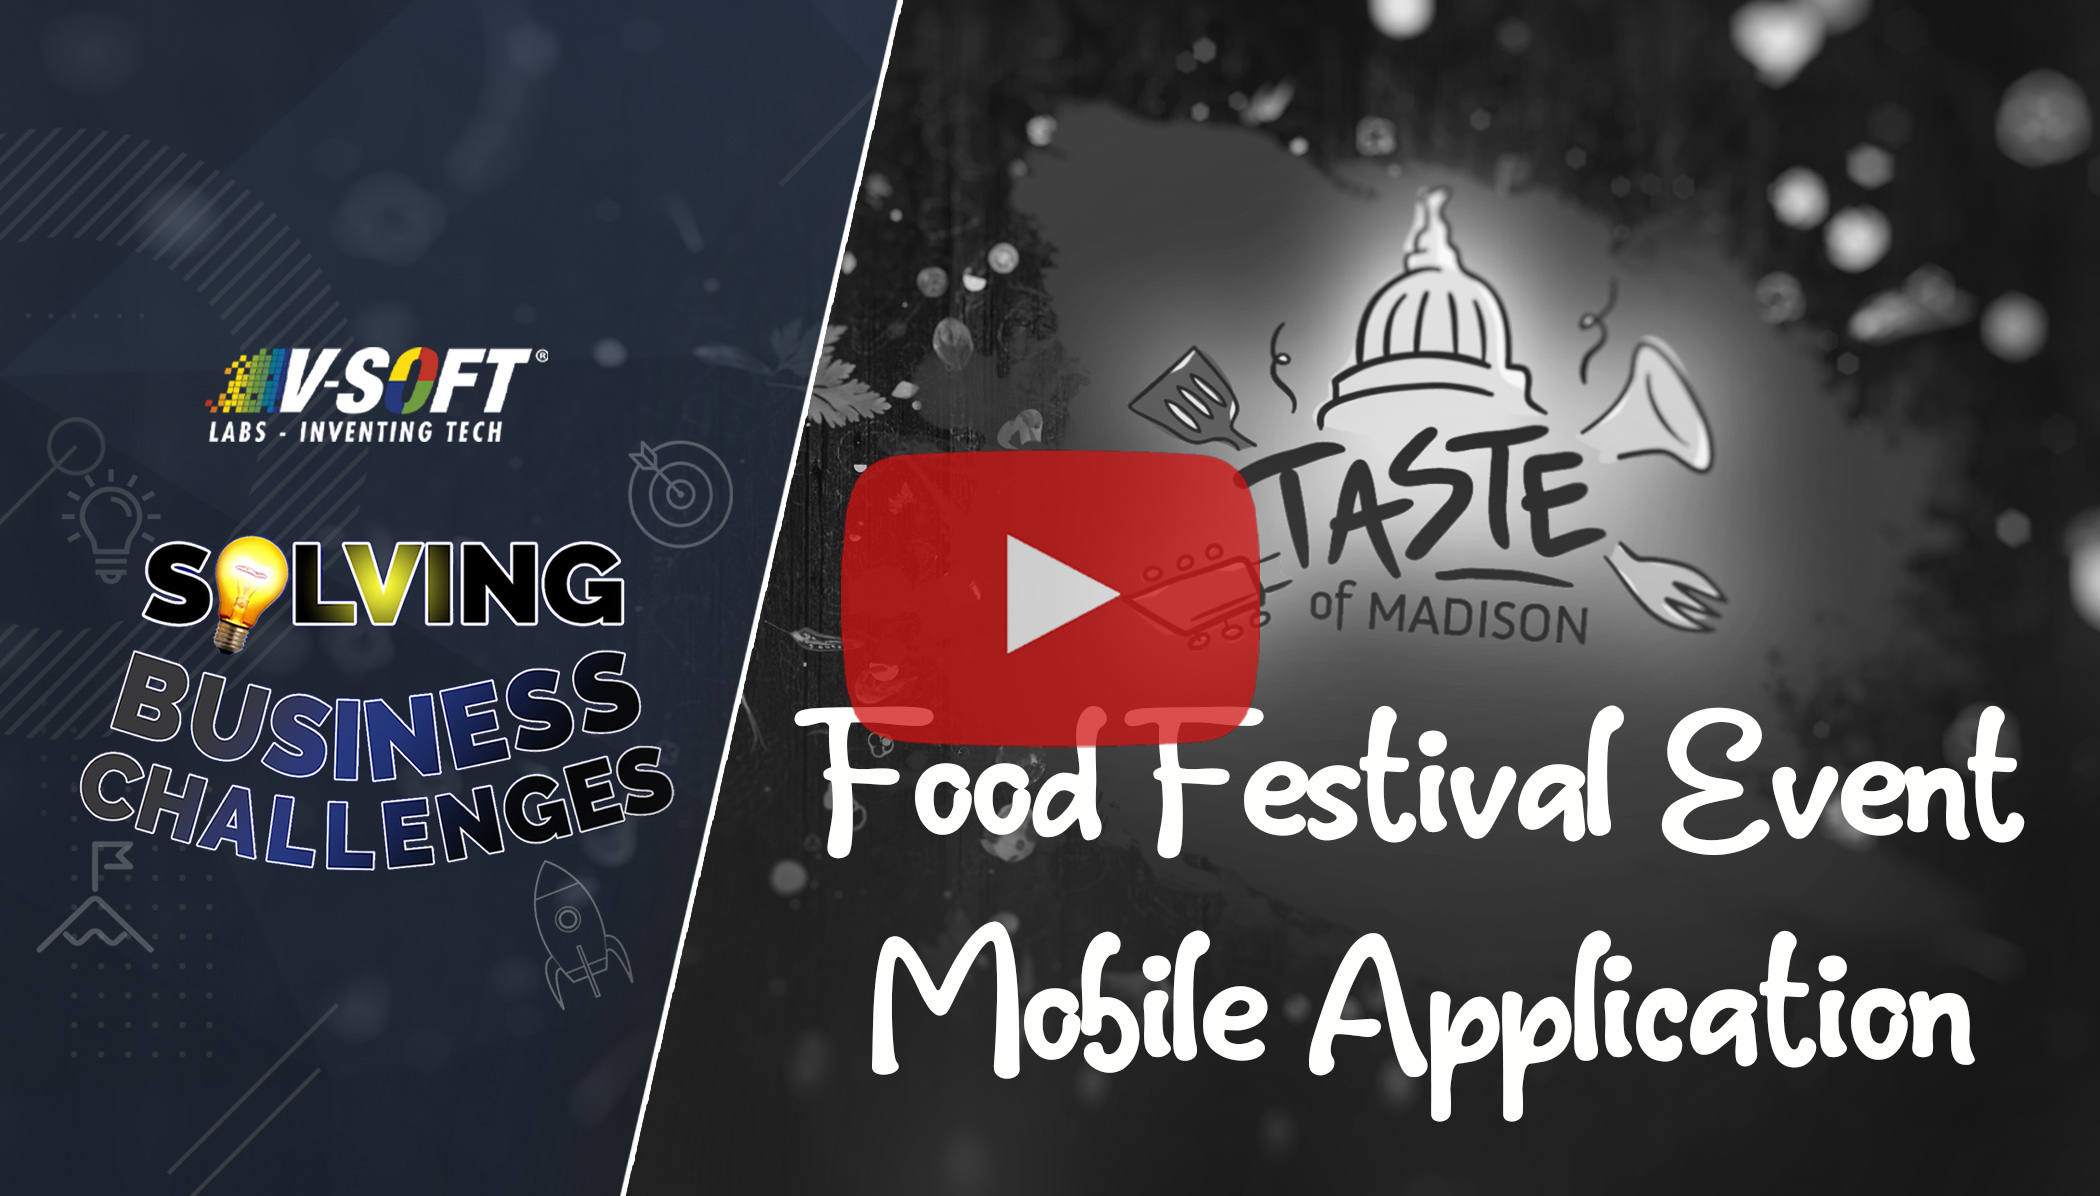 Mobile Application for Food and music festival